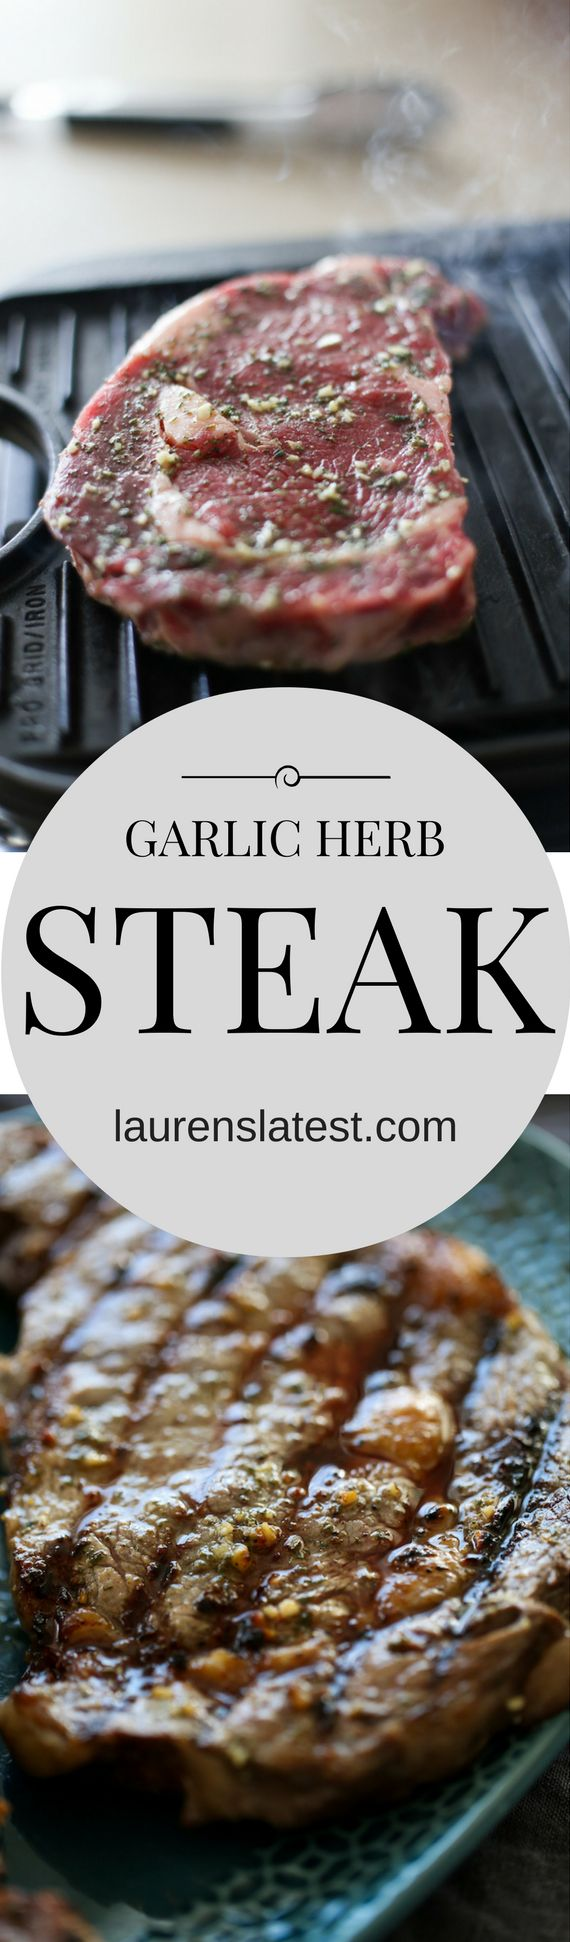 GARLIC AND HERB STEAK IS THE EASIEST, MOST TENDER AND TASTIEST RIBEYE RECIPE! FLAVORFUL, SIMPLE AND FAST, THIS AMAZING DINNER WILL GET YOU COOKING STEAK ALL YEAR LONG!